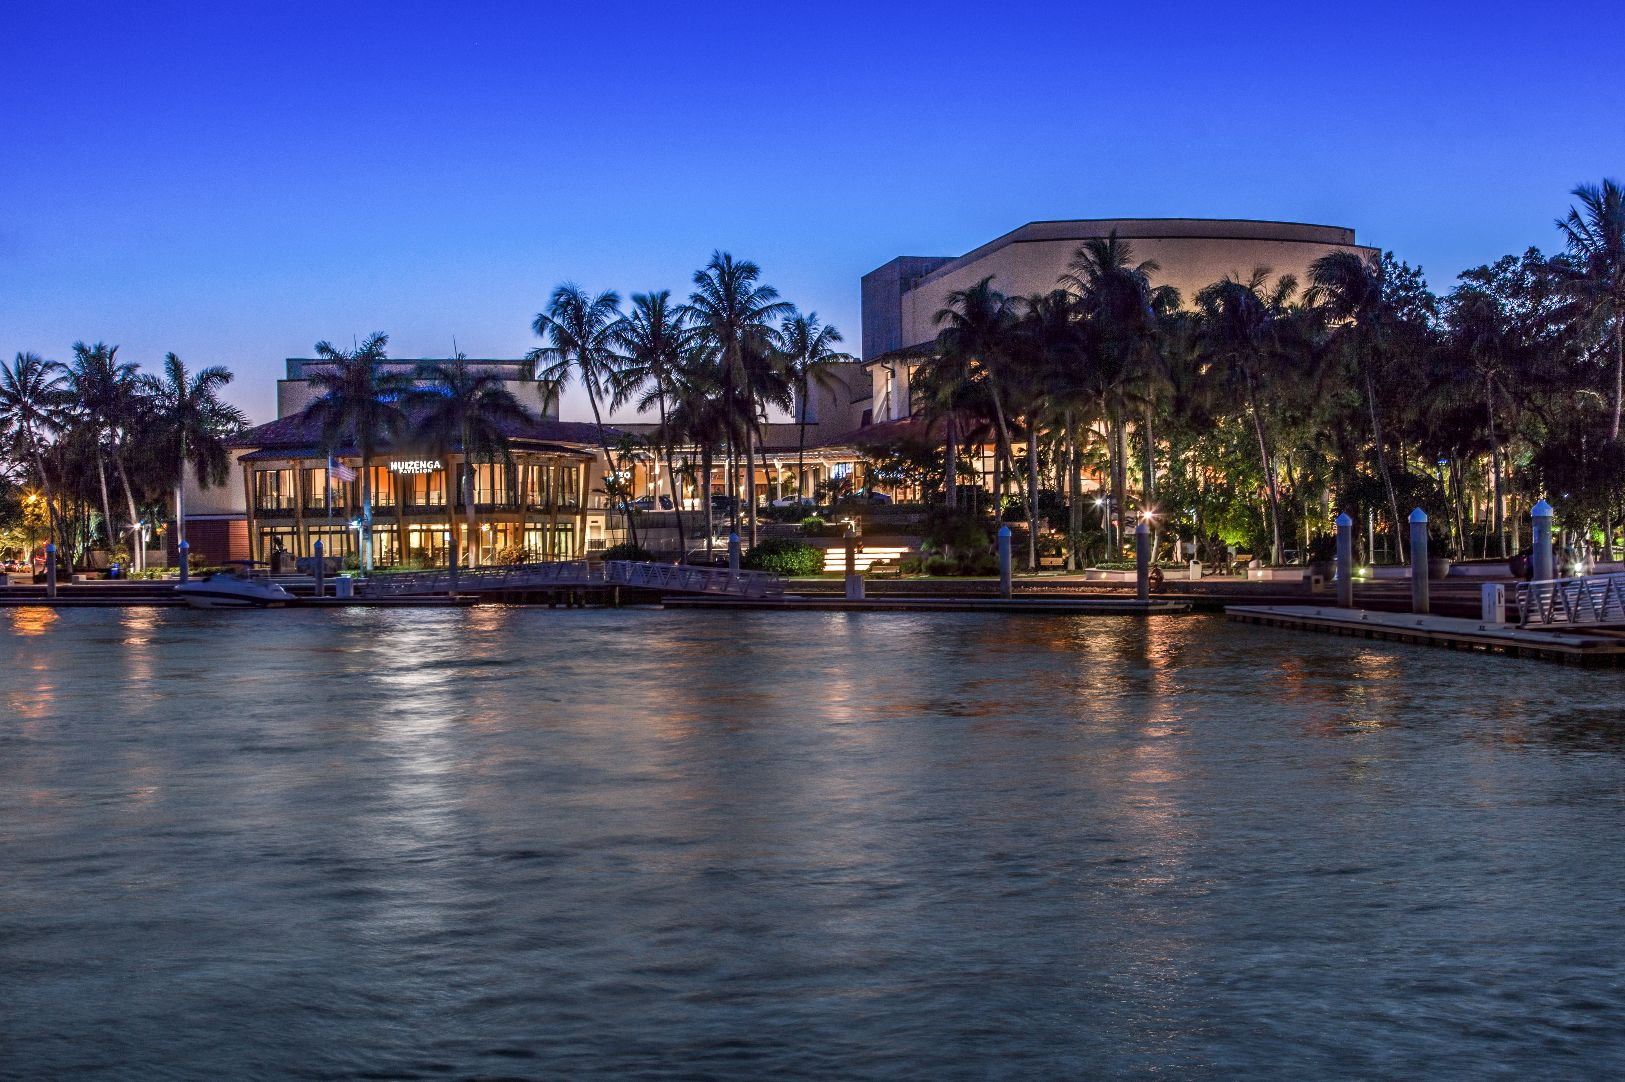 The Broward Center